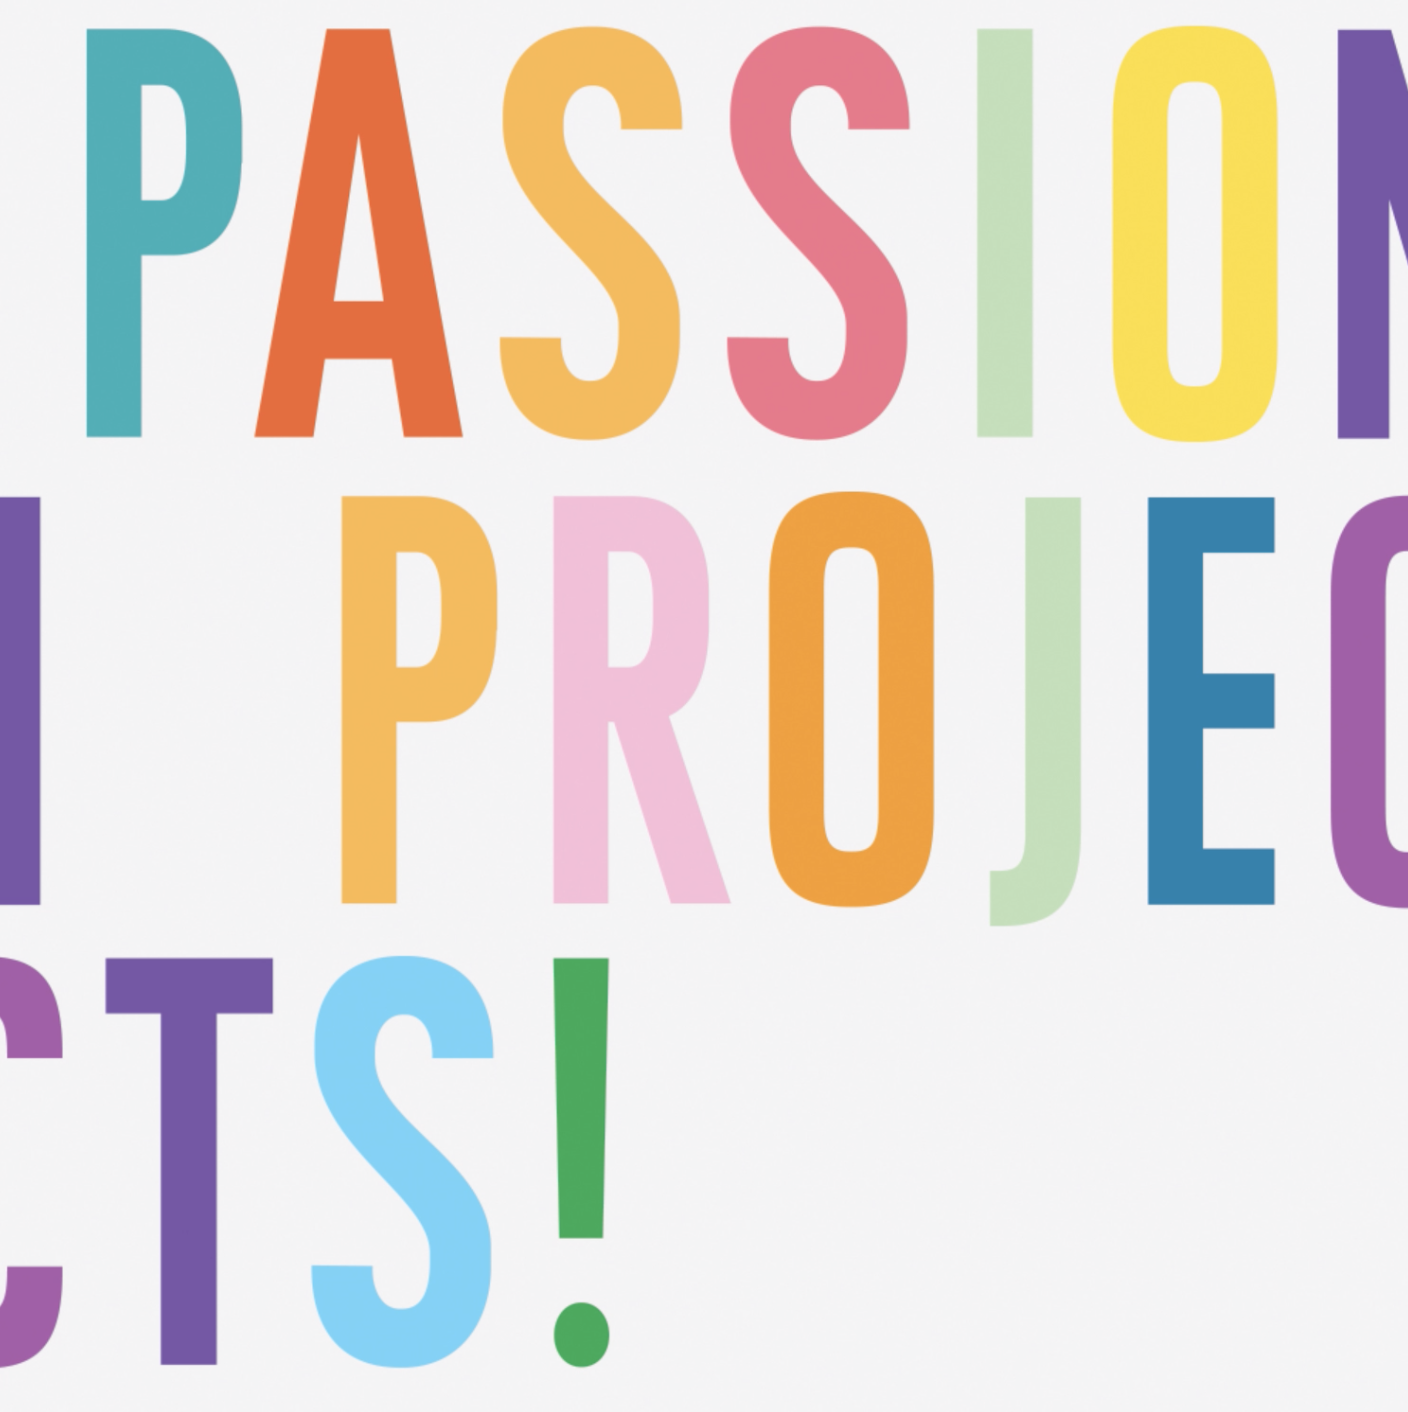 Hosted a workshop with the AIGA on Passion Projects